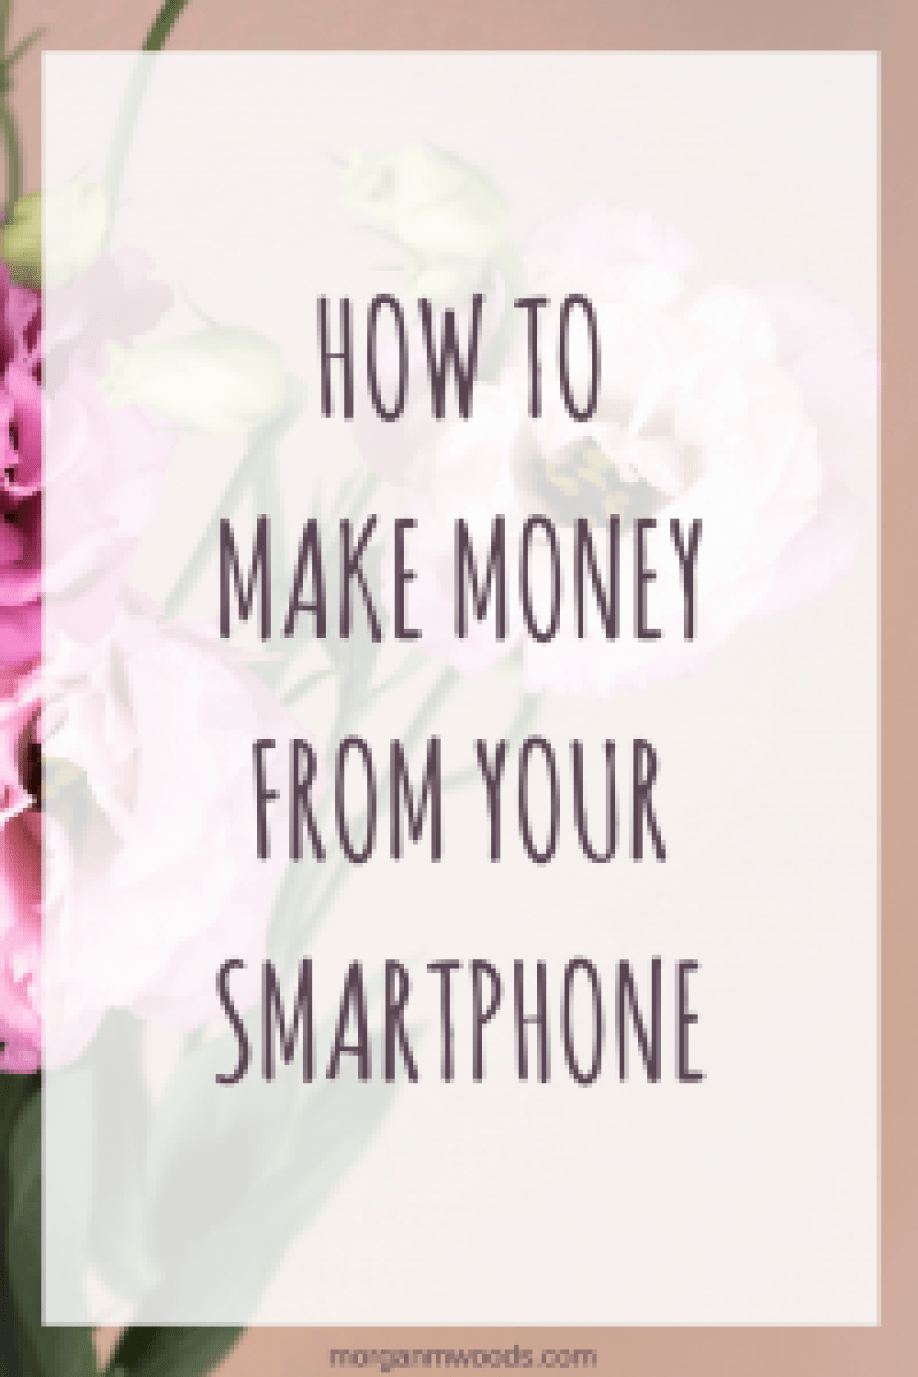 How to make money from your smartphone